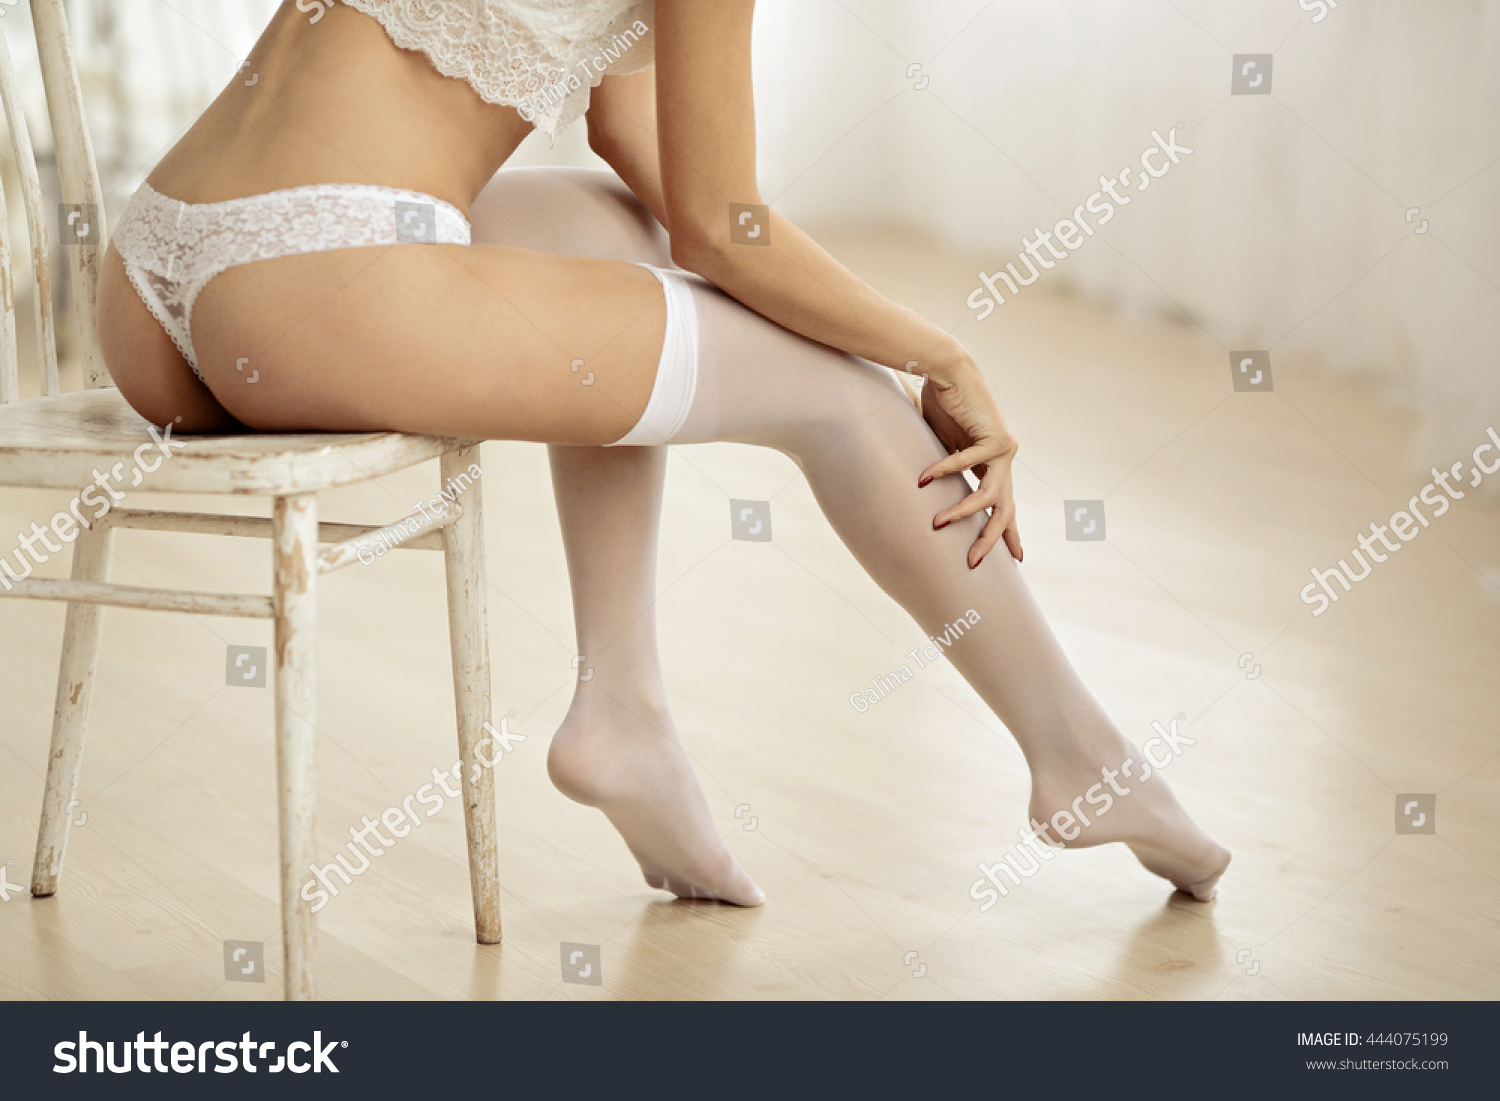 beautiful sexy lady elegant white panties stock photo (edit now